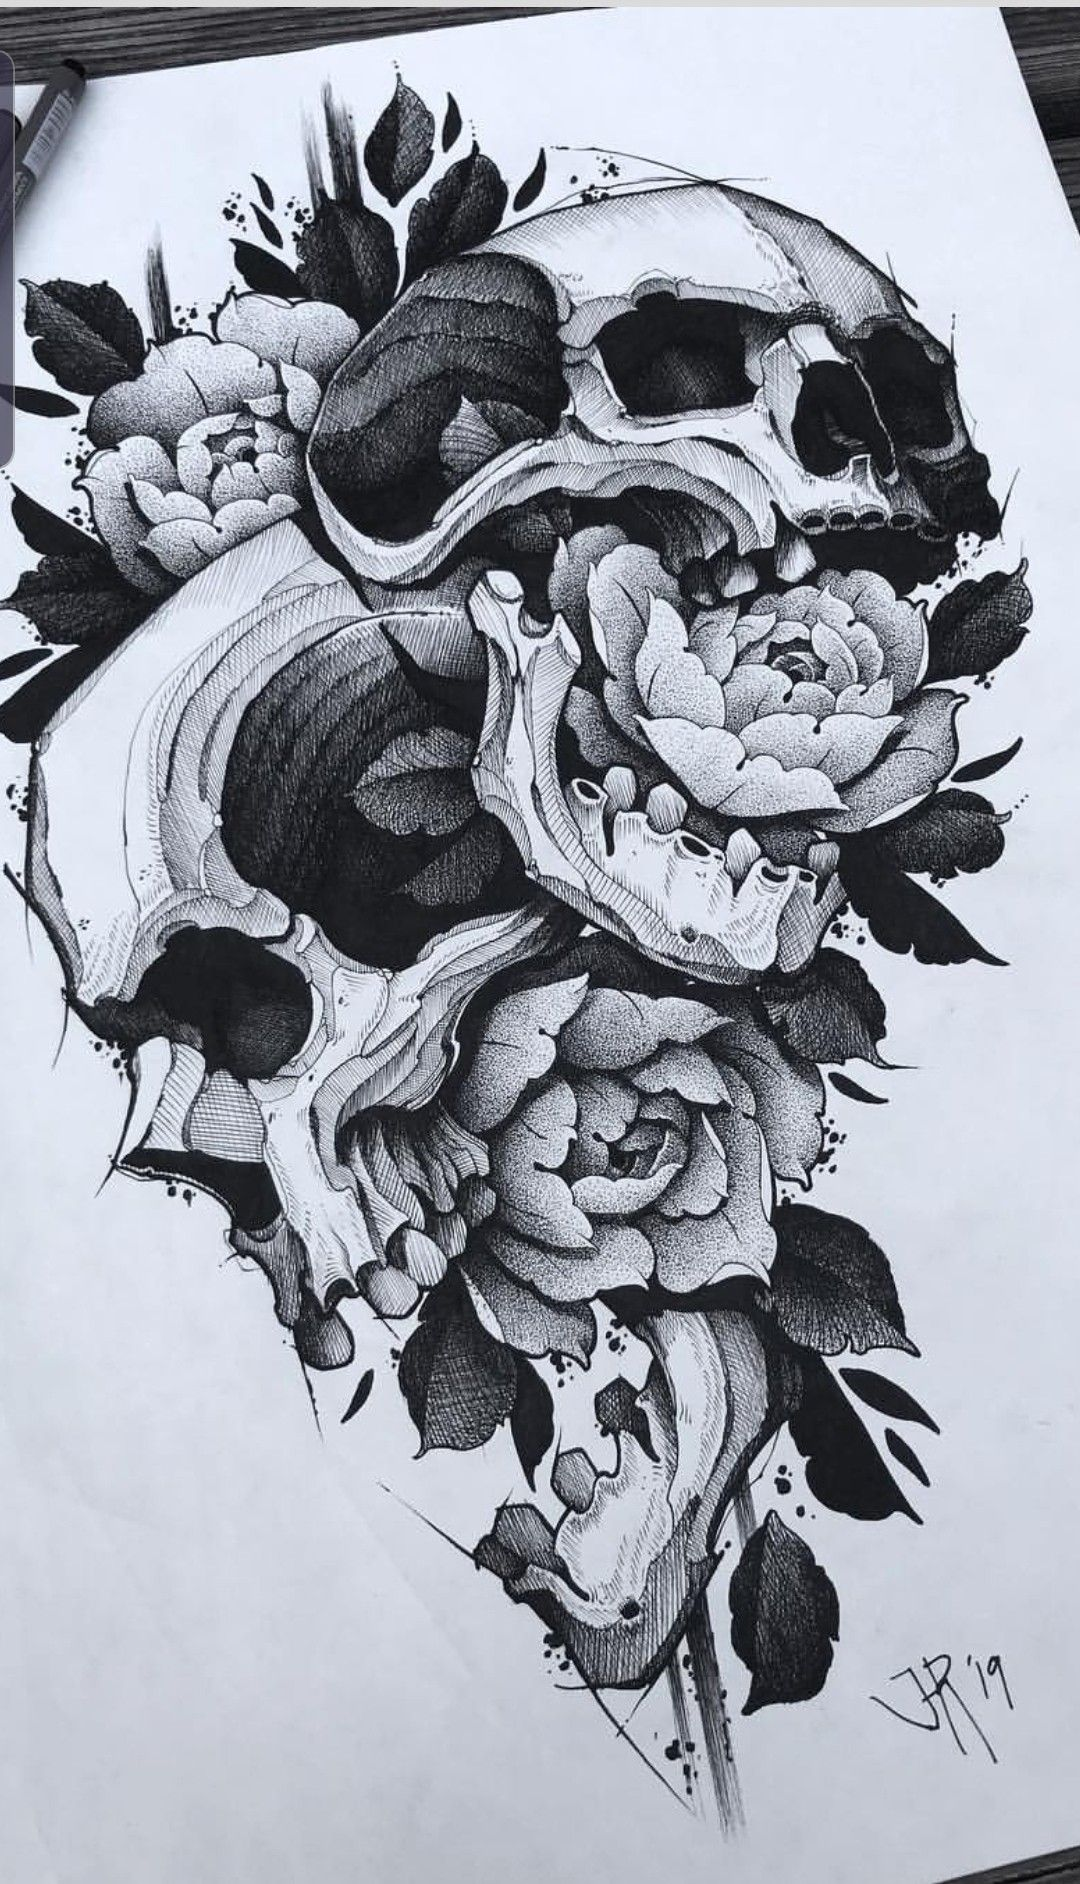 Pin By Drew Huff On Graphic Whipshading Linework Tattoo Design Drawings Skull Rose Tattoos Skull Tattoo Design